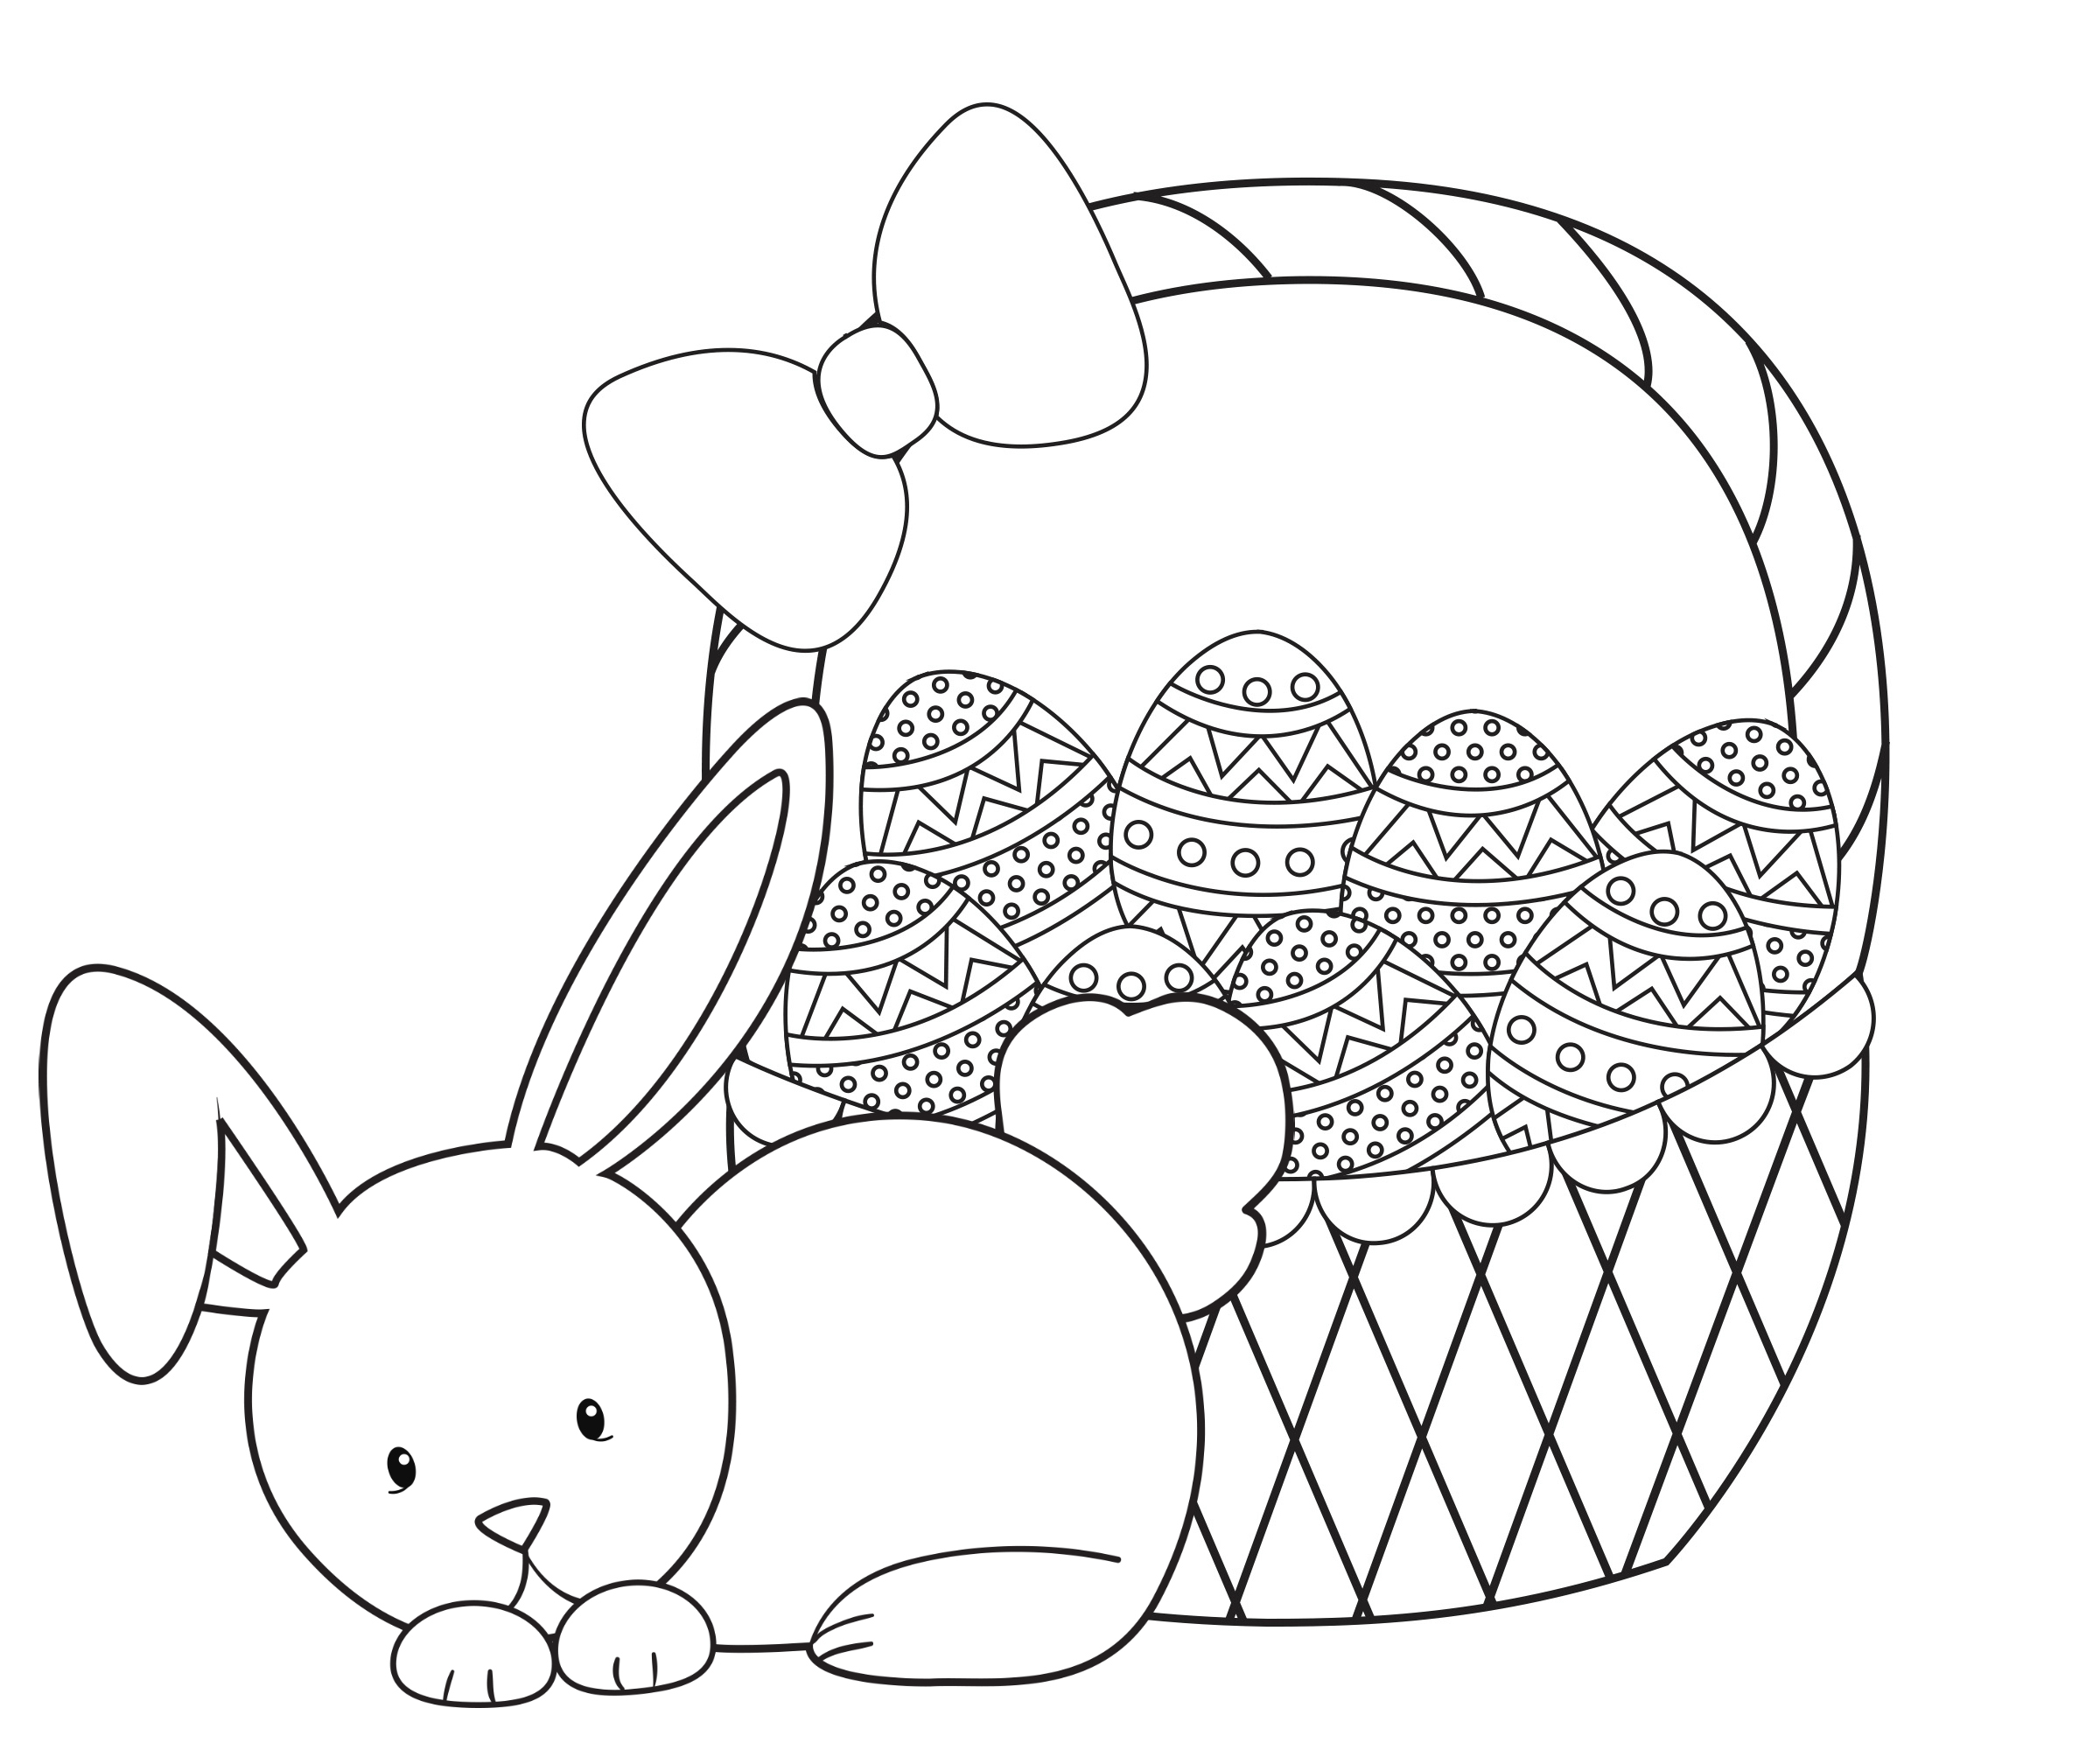 coloring pages easter eggs - photo#34